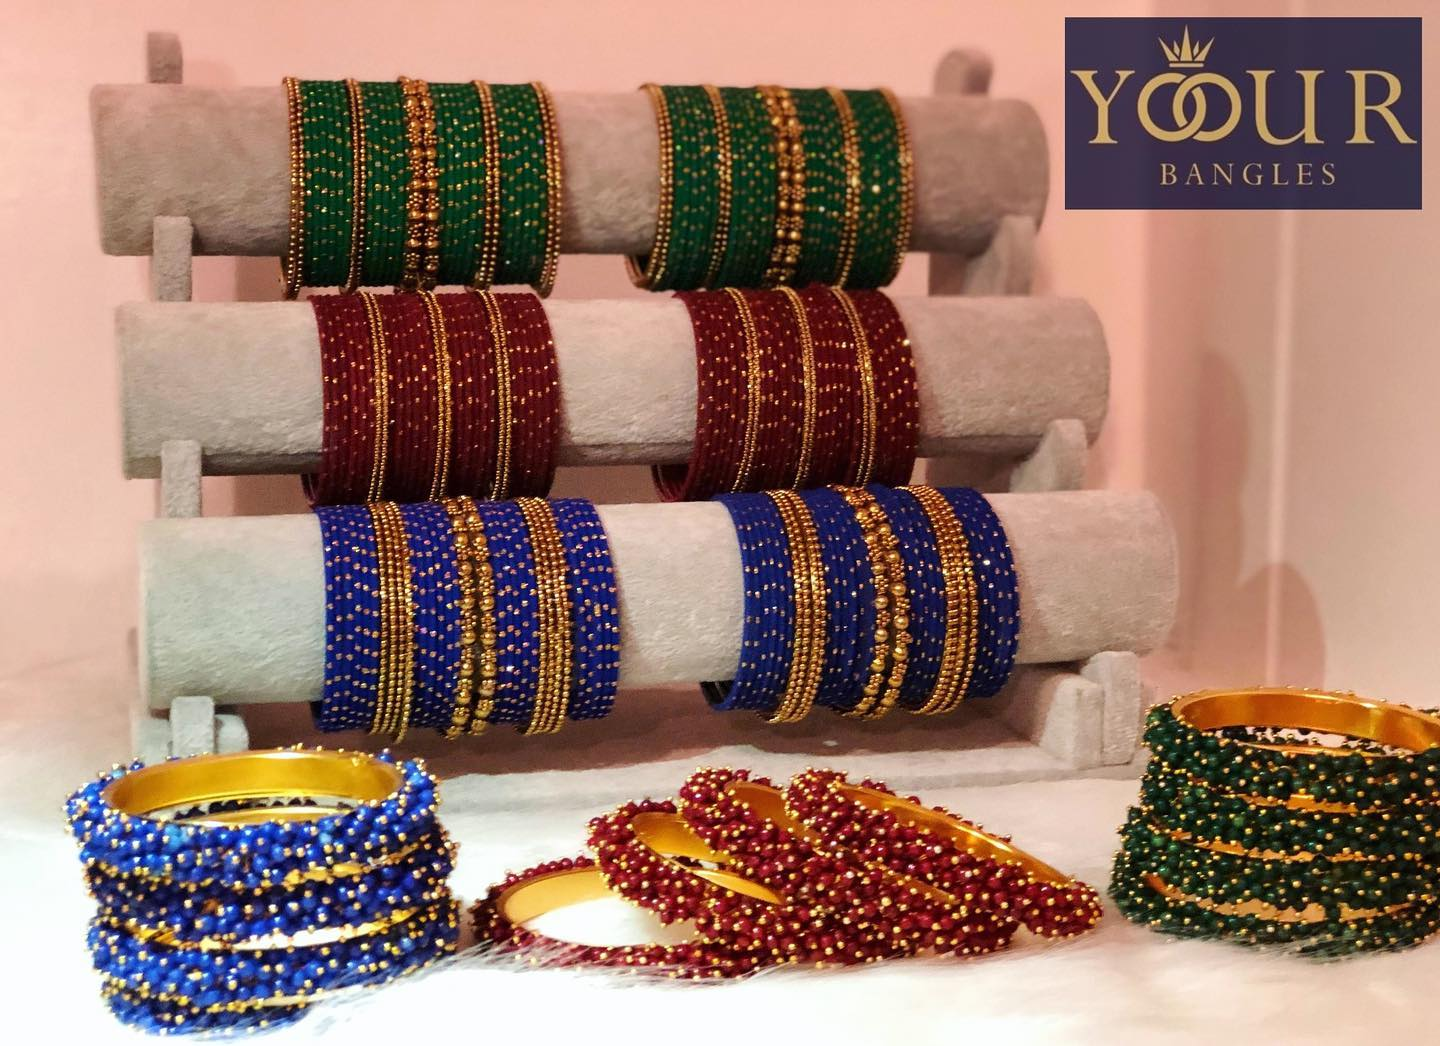 Designer Bangle Sets